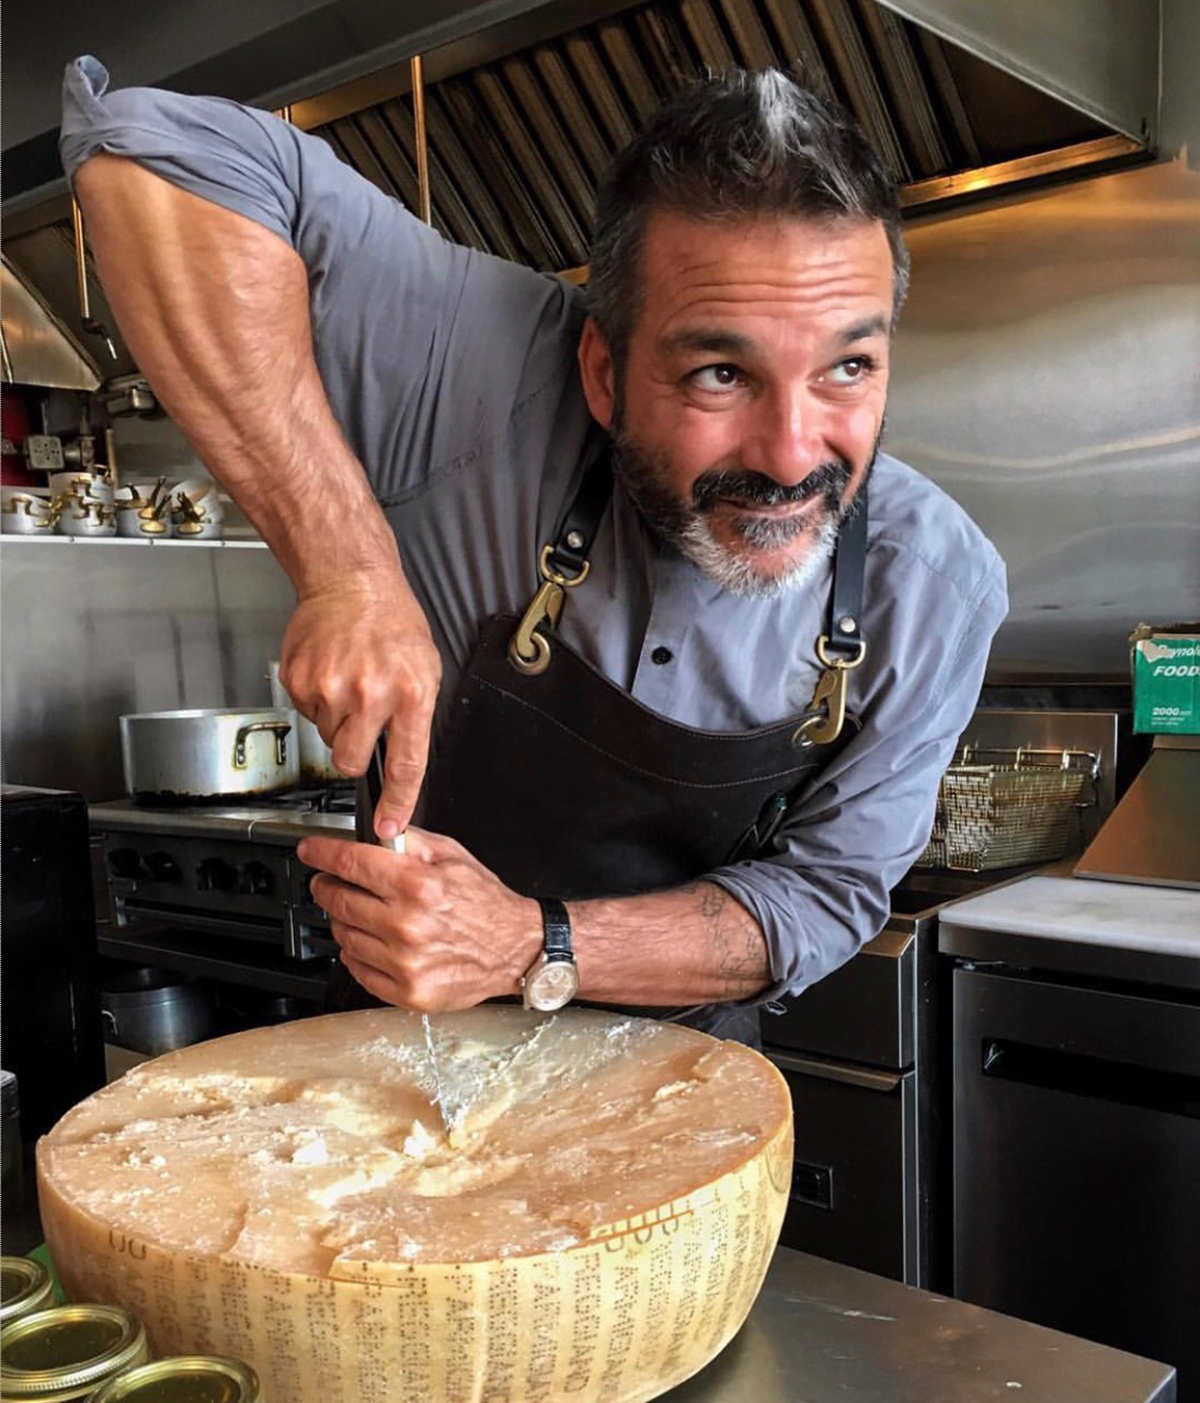 Via Emilia Garden in Midtown Nonna Beppa Hospitality Group chef Wendy Cacciatori and his wife Valentina Imbrenda are opening Via Emilia Garden restaurant in Midtown Miami, 3500 N. Miami Ave. The duo are known already for Emilia 9 on Miami Beach. The 2,000-square-foot, indoor and outdoor eatery in Midtown will seat up to 100.